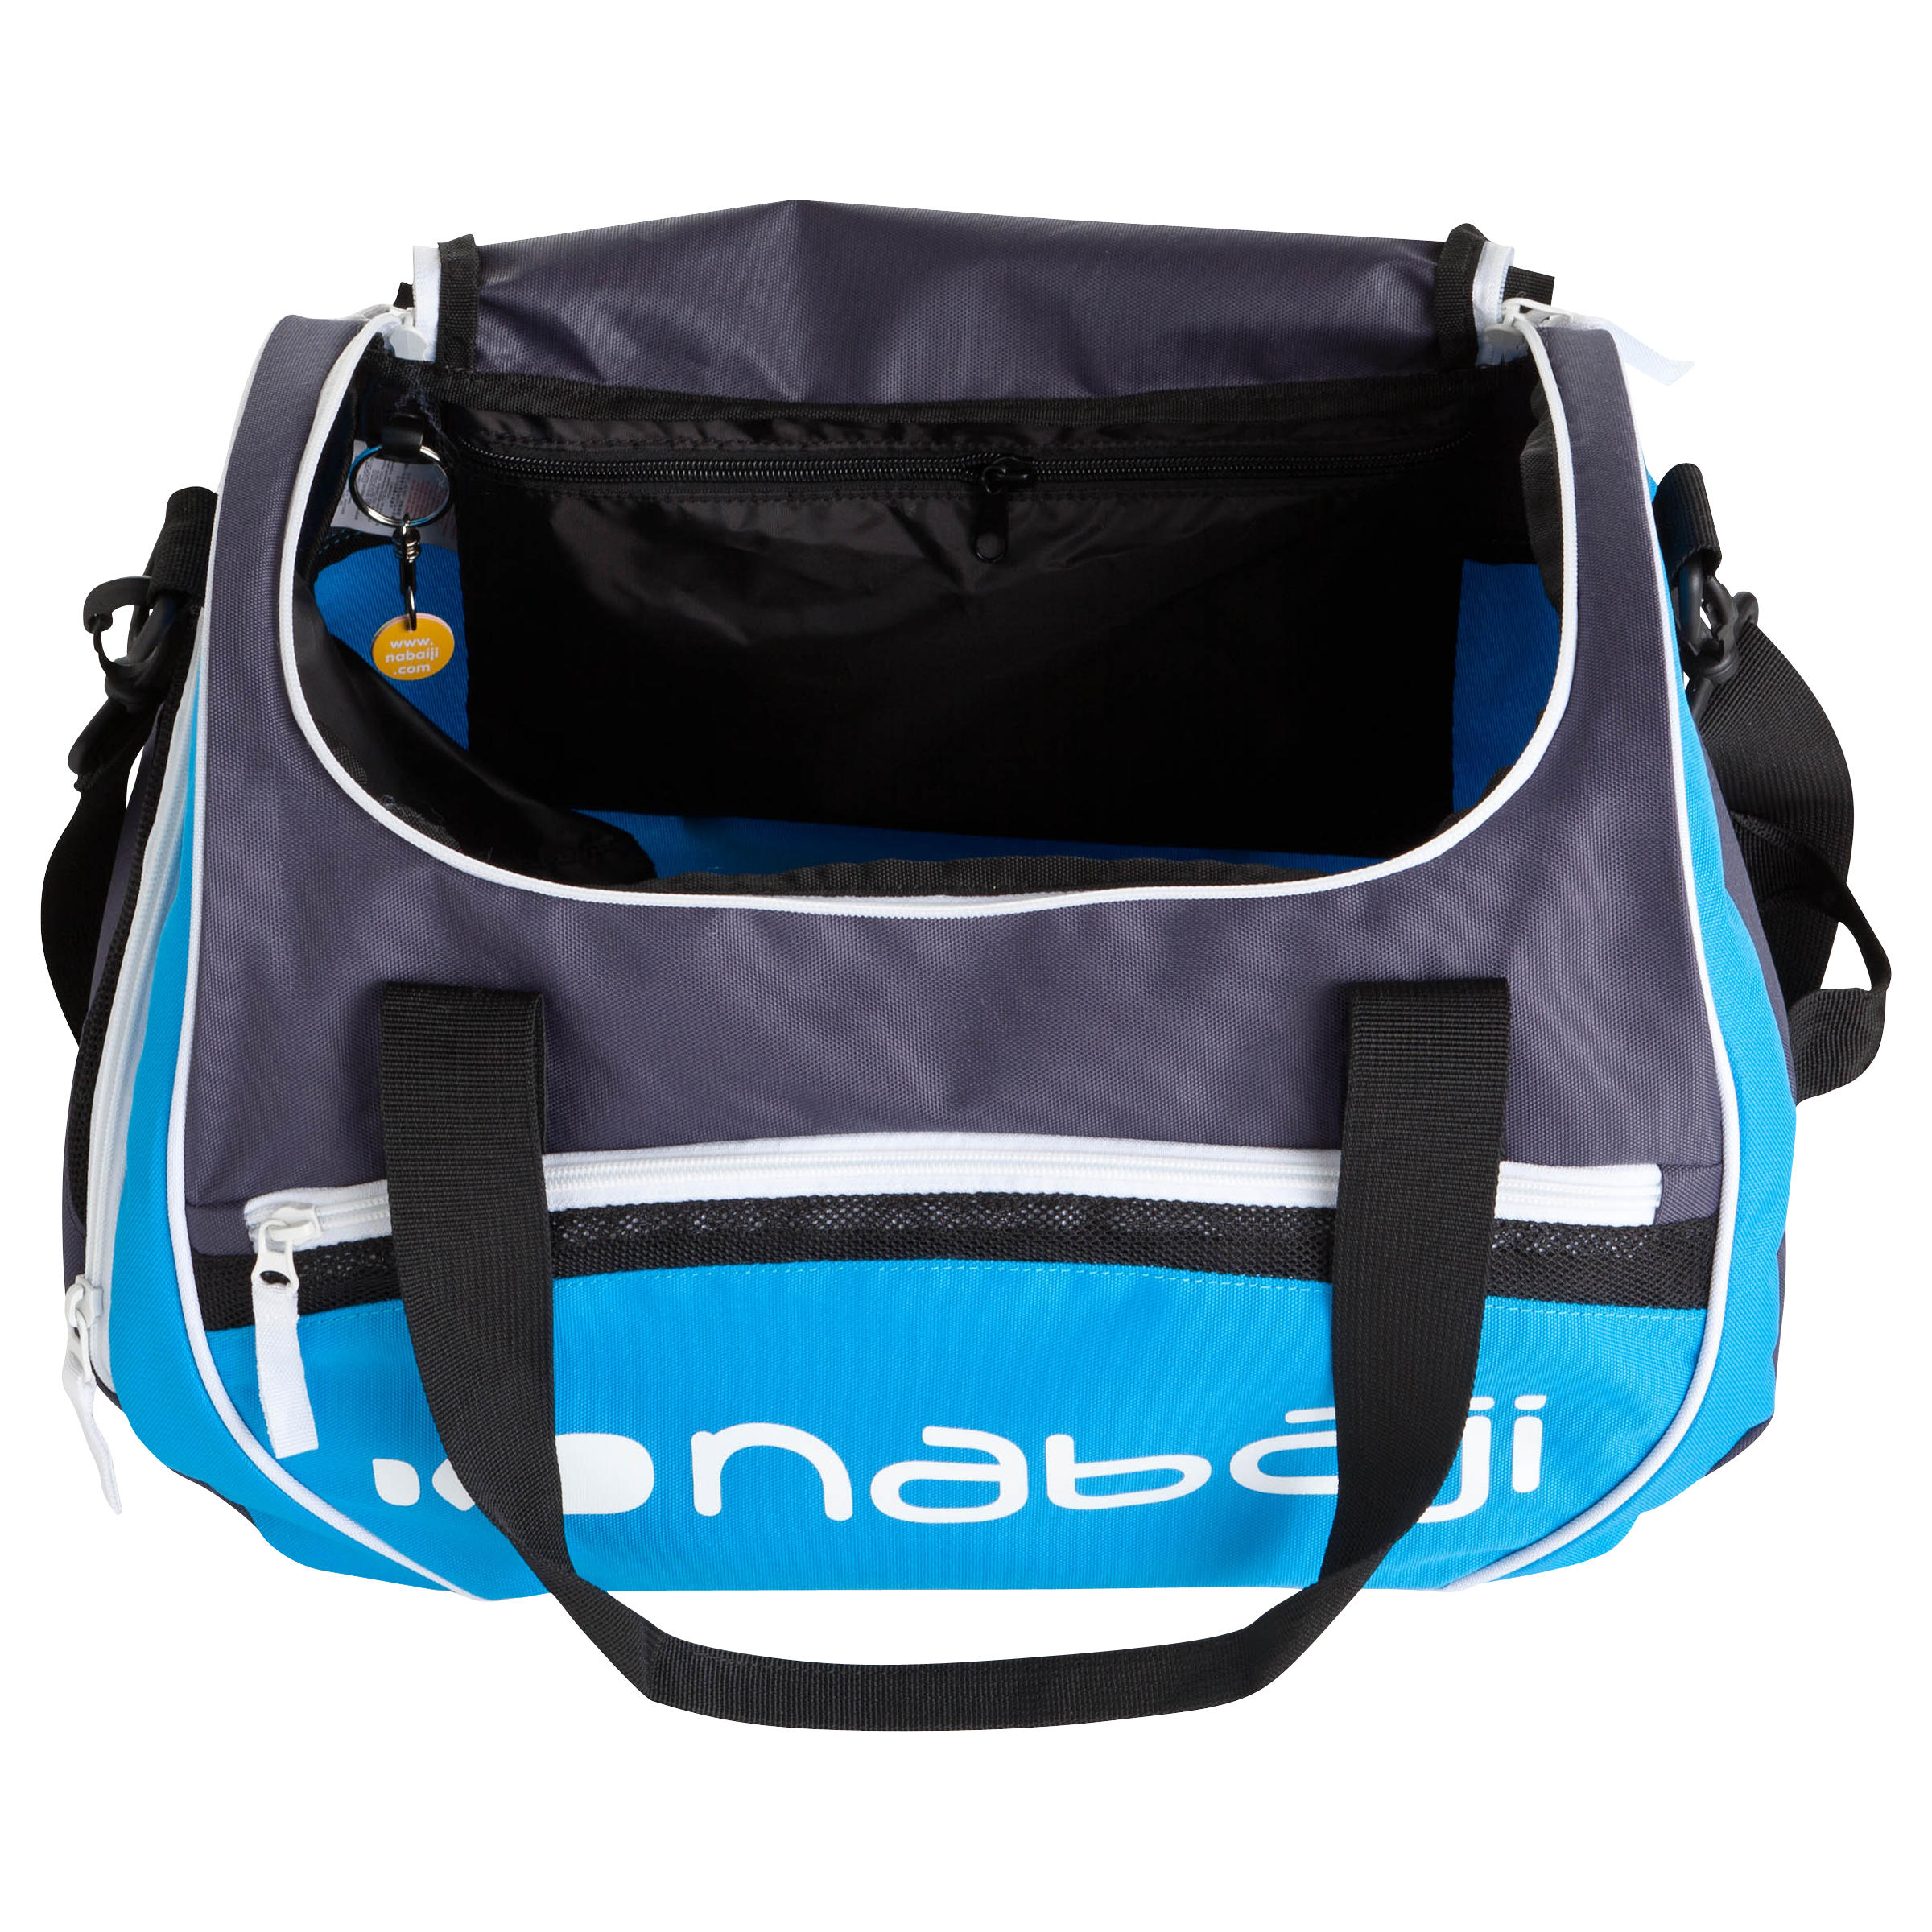 500 30L POOL BAG - BLUE GREY